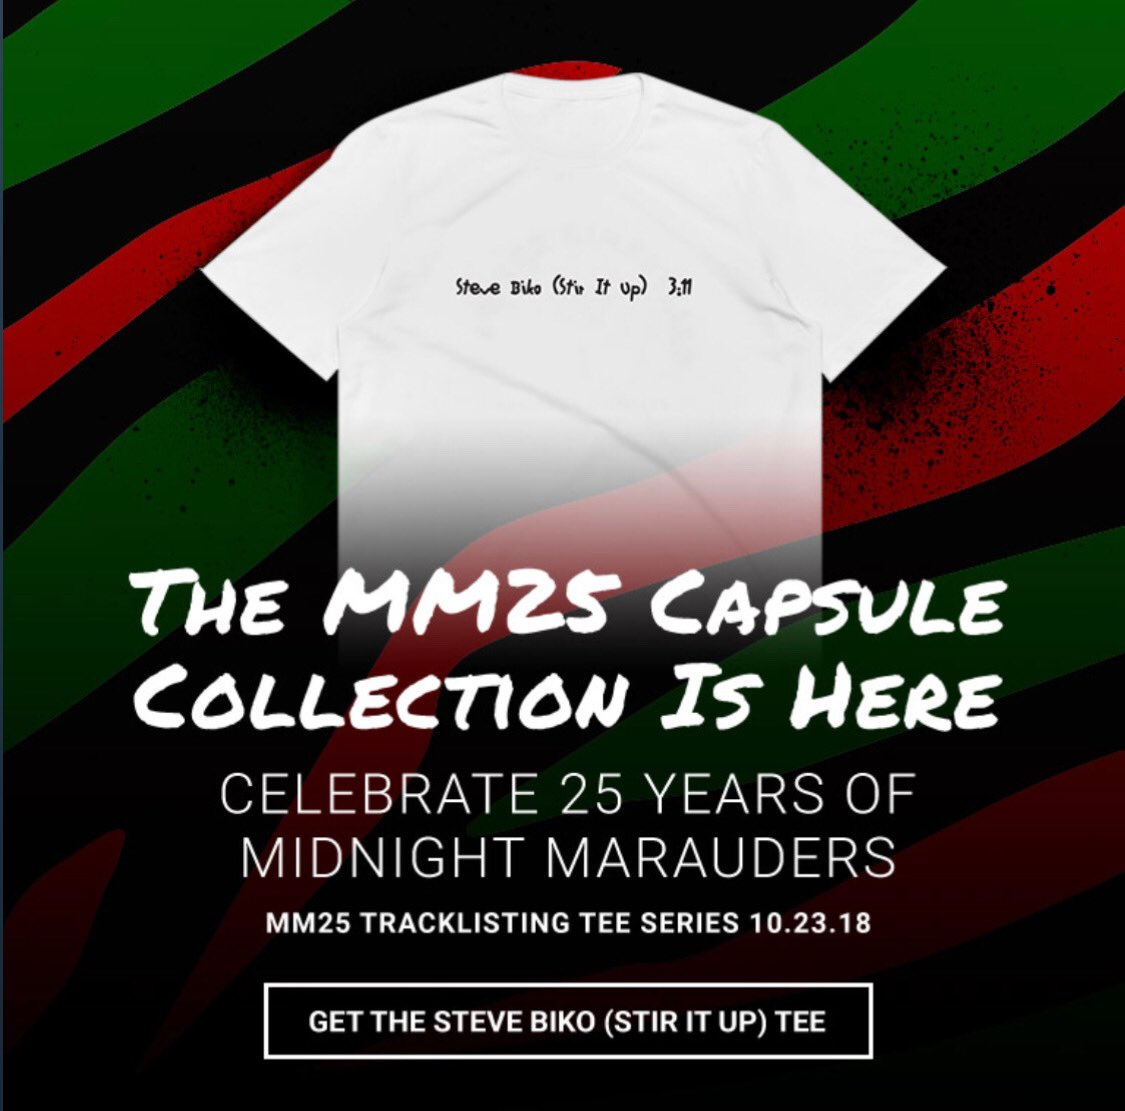 """The """"Steve Biko""""(Stir It Up) Tracklisting Tee from the #MM25 Capsule collection is available for purchase via our online store. ATCQ Online Store Link is in our Bio ❤️🖤💚 #LetsMakeSomethingHappen #TheQuestIsOn #ForMalik #MM25 https://t.co/5HudVNyRkS"""